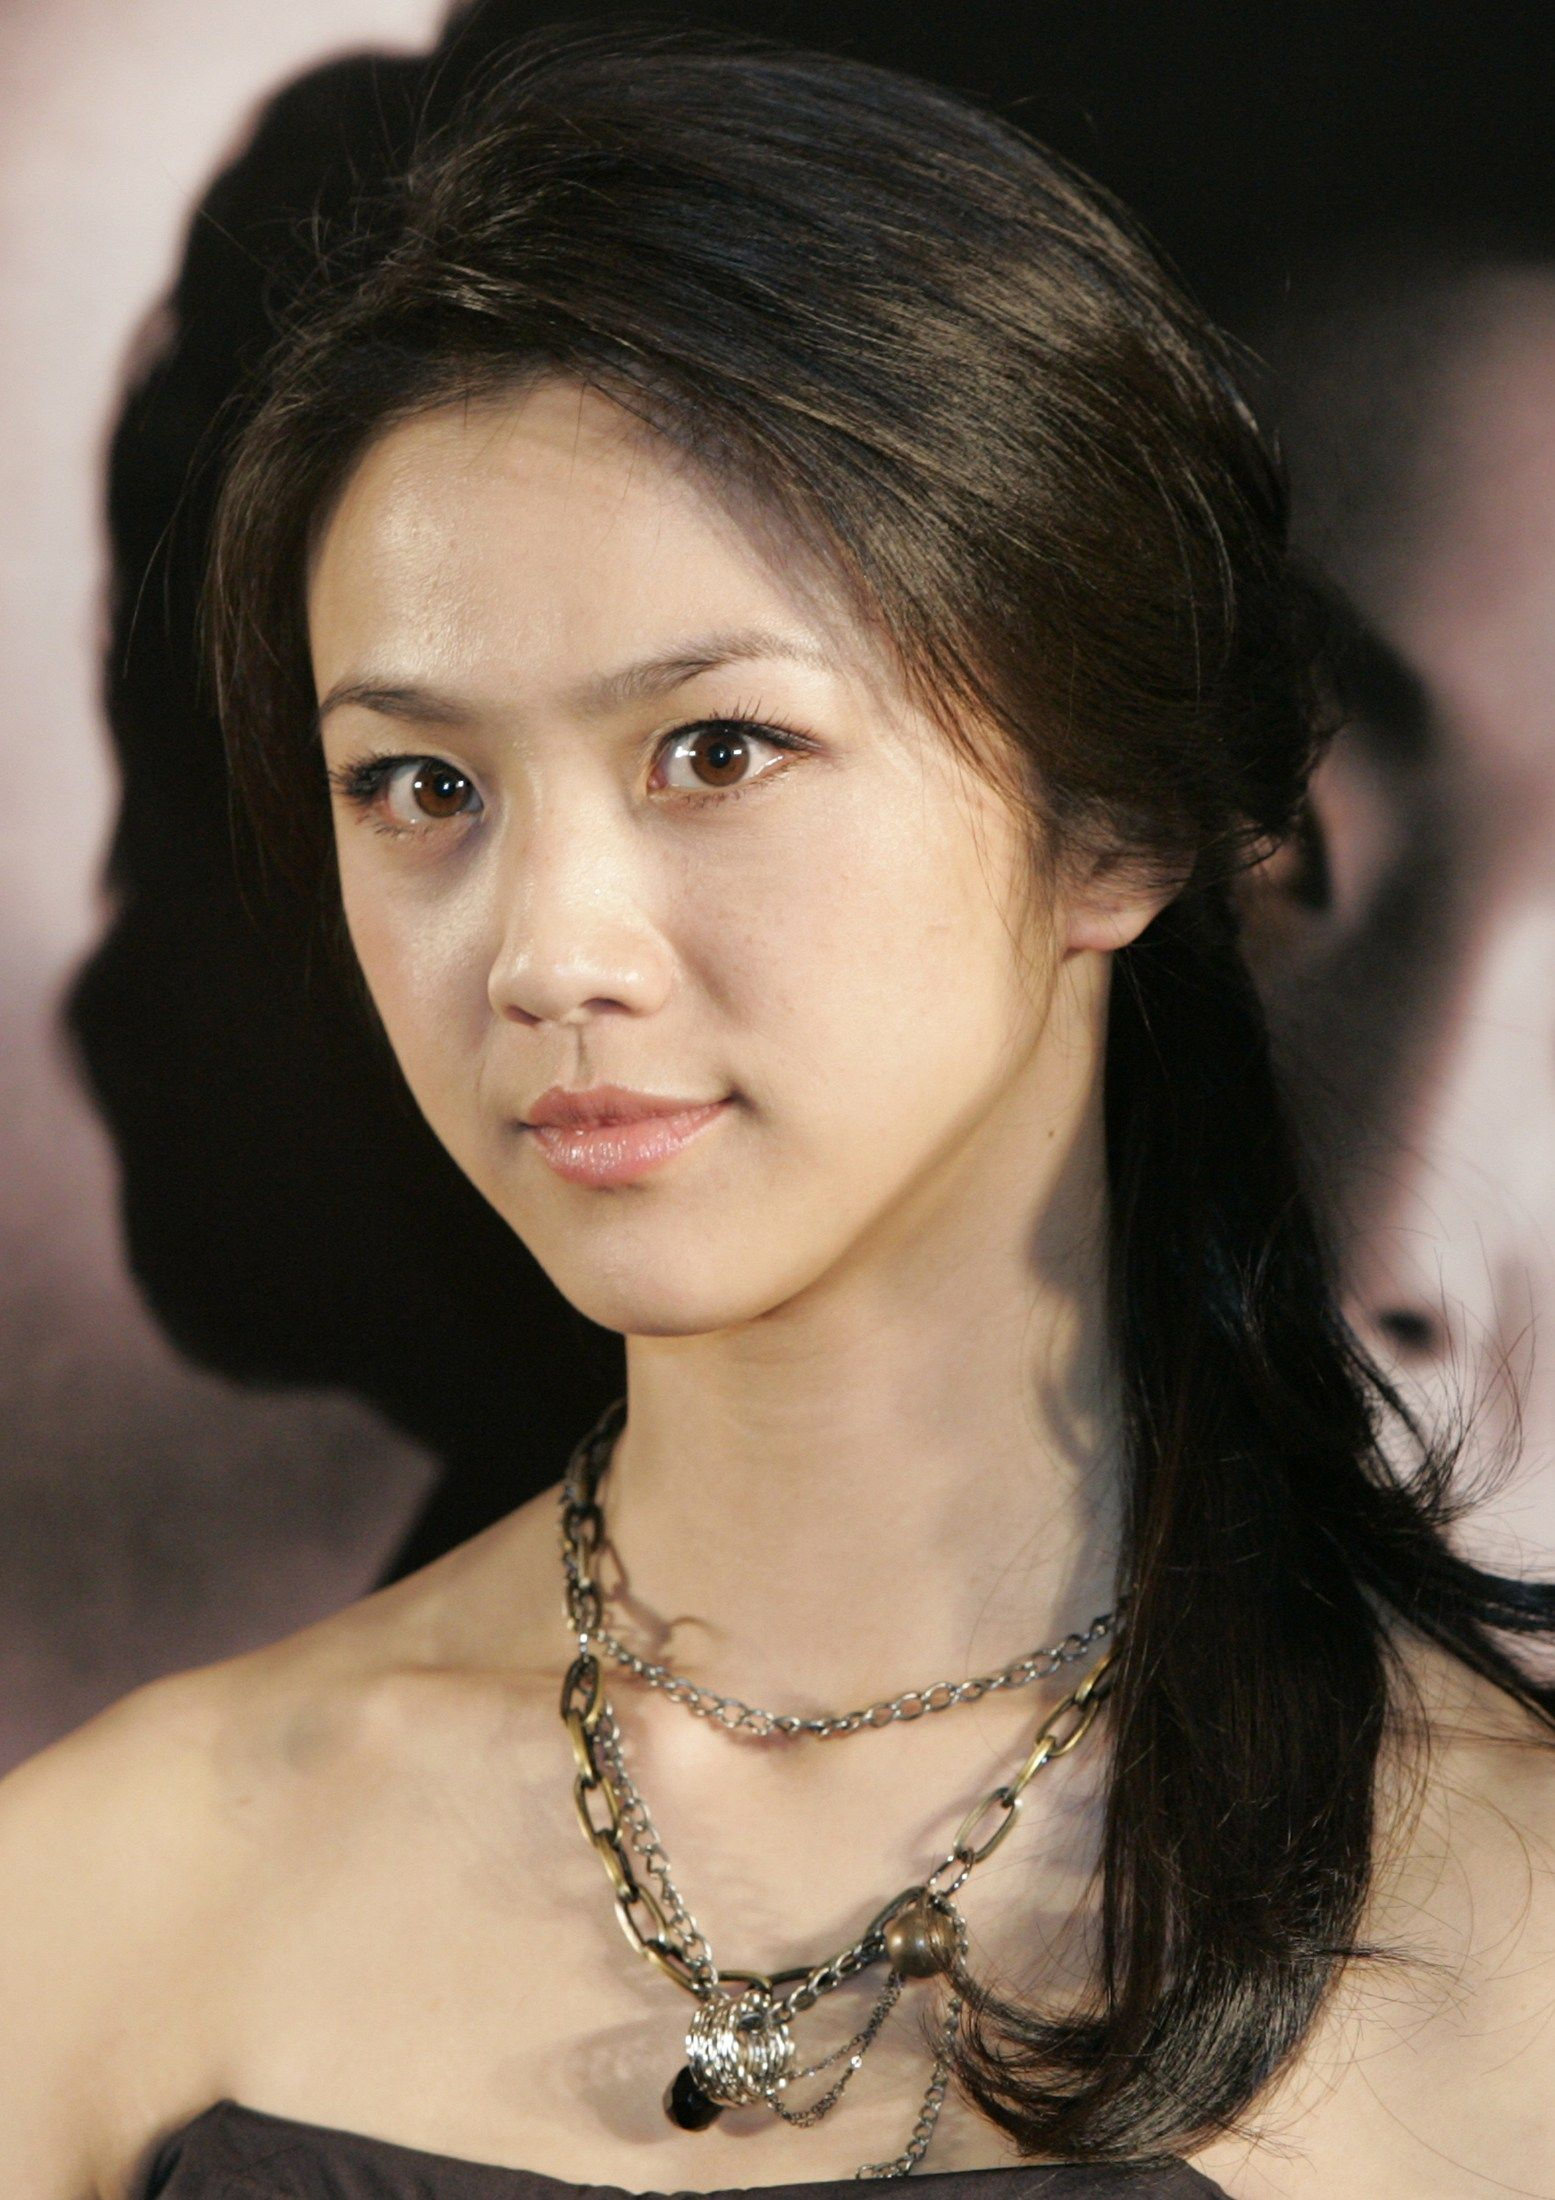 Tang Wei photo 65 of 119 pics, wallpaper - photo #604094 - ThePlace2